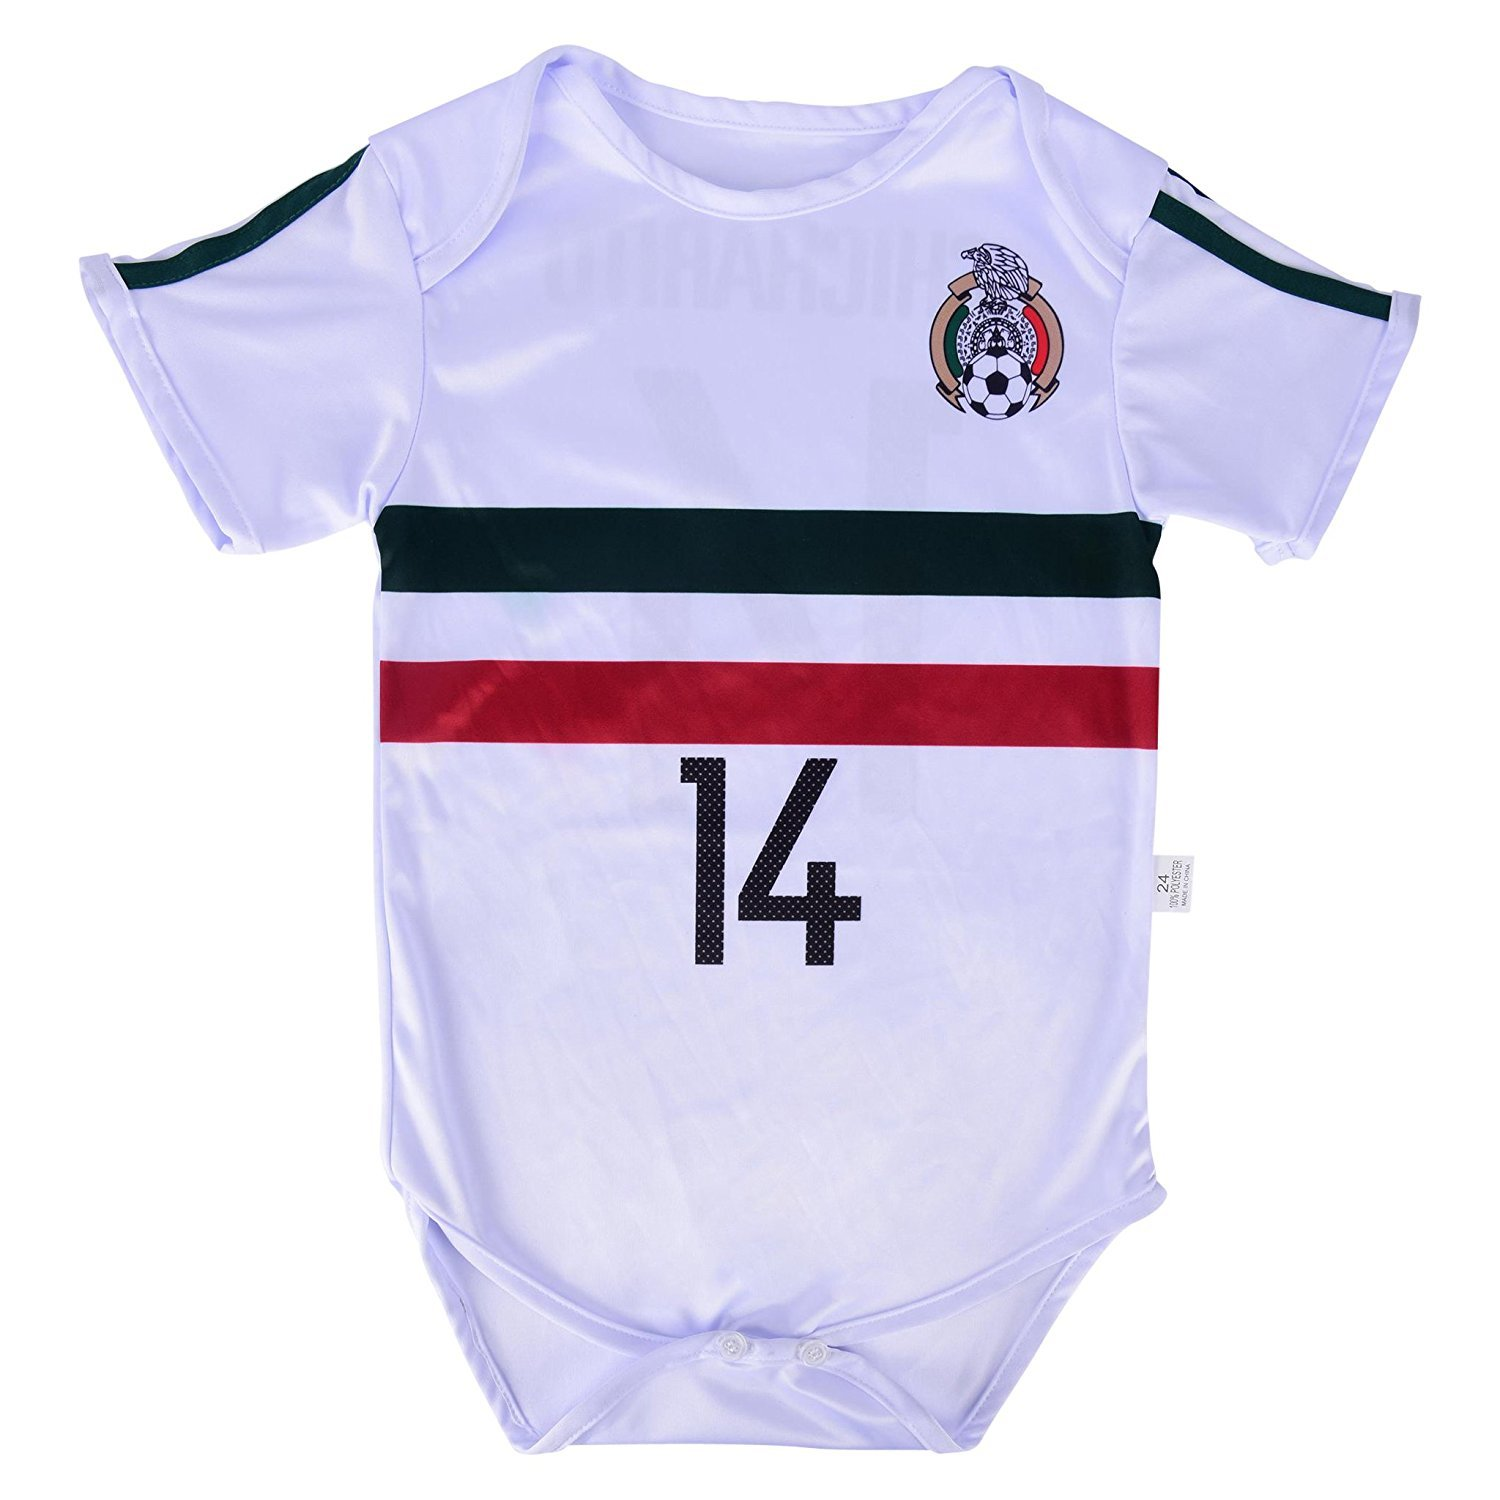 f4a6fa640be World Cup Baby Chicharito #14 Mexico Soccer Jersey Baby Infant and Toddler...  Product Details. Premium Soccer Baby Rompers ...